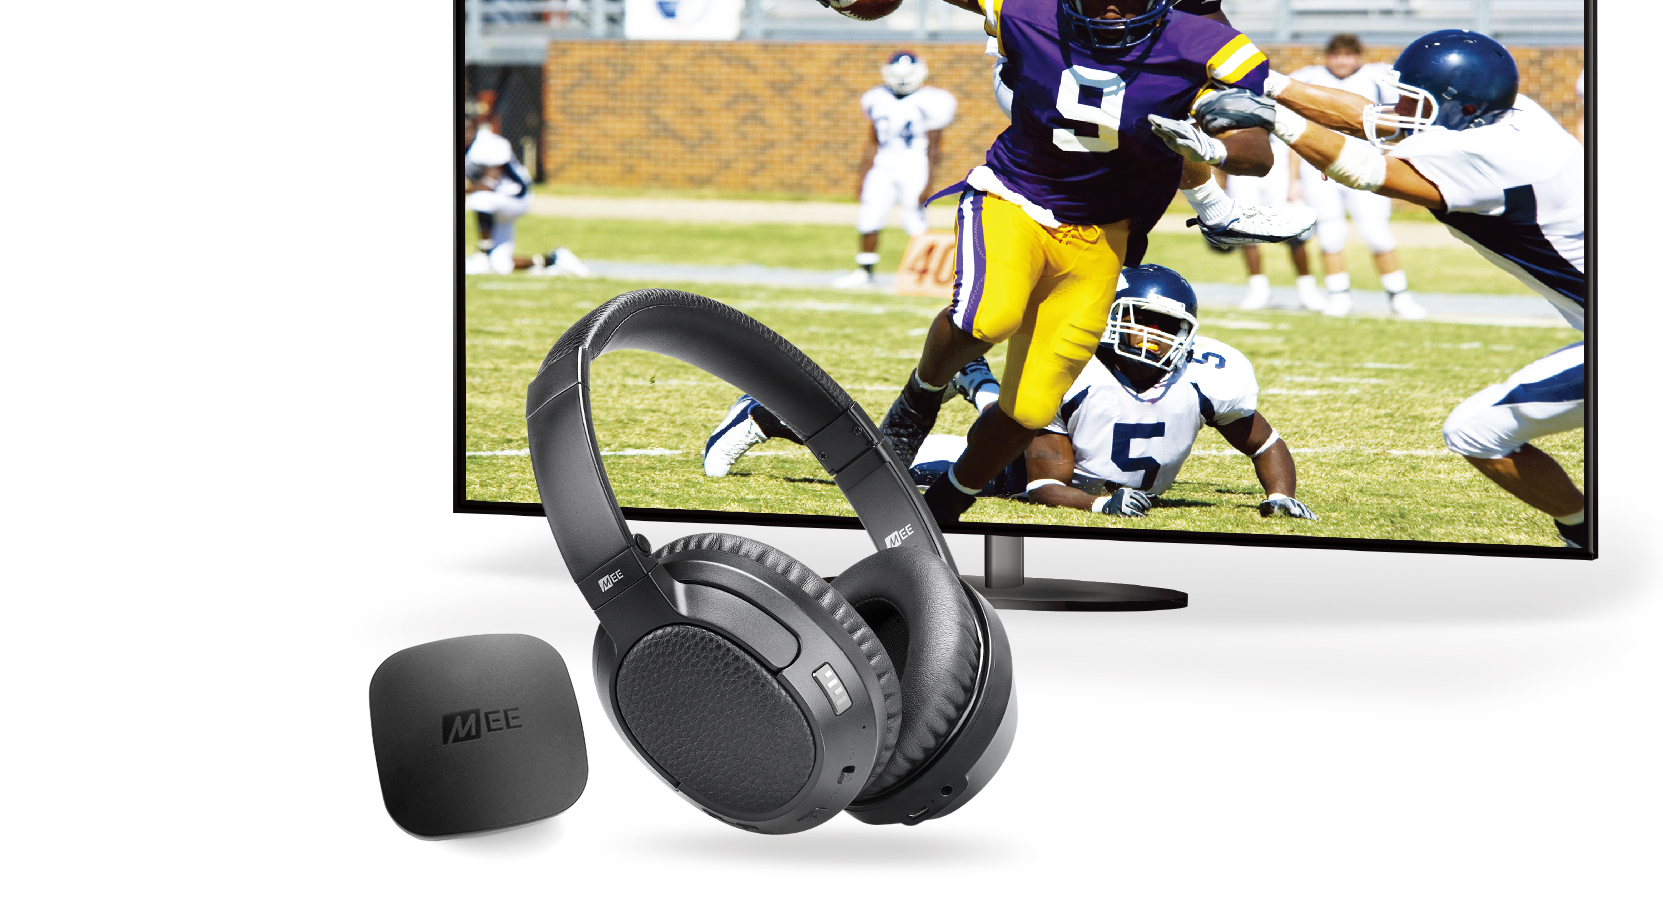 Connect T1CMA Bluetooth Wireless Headphone System for TV - Includes Audio  Transmitter and Matrix Cinema Low Latency Bluetooth Headphones